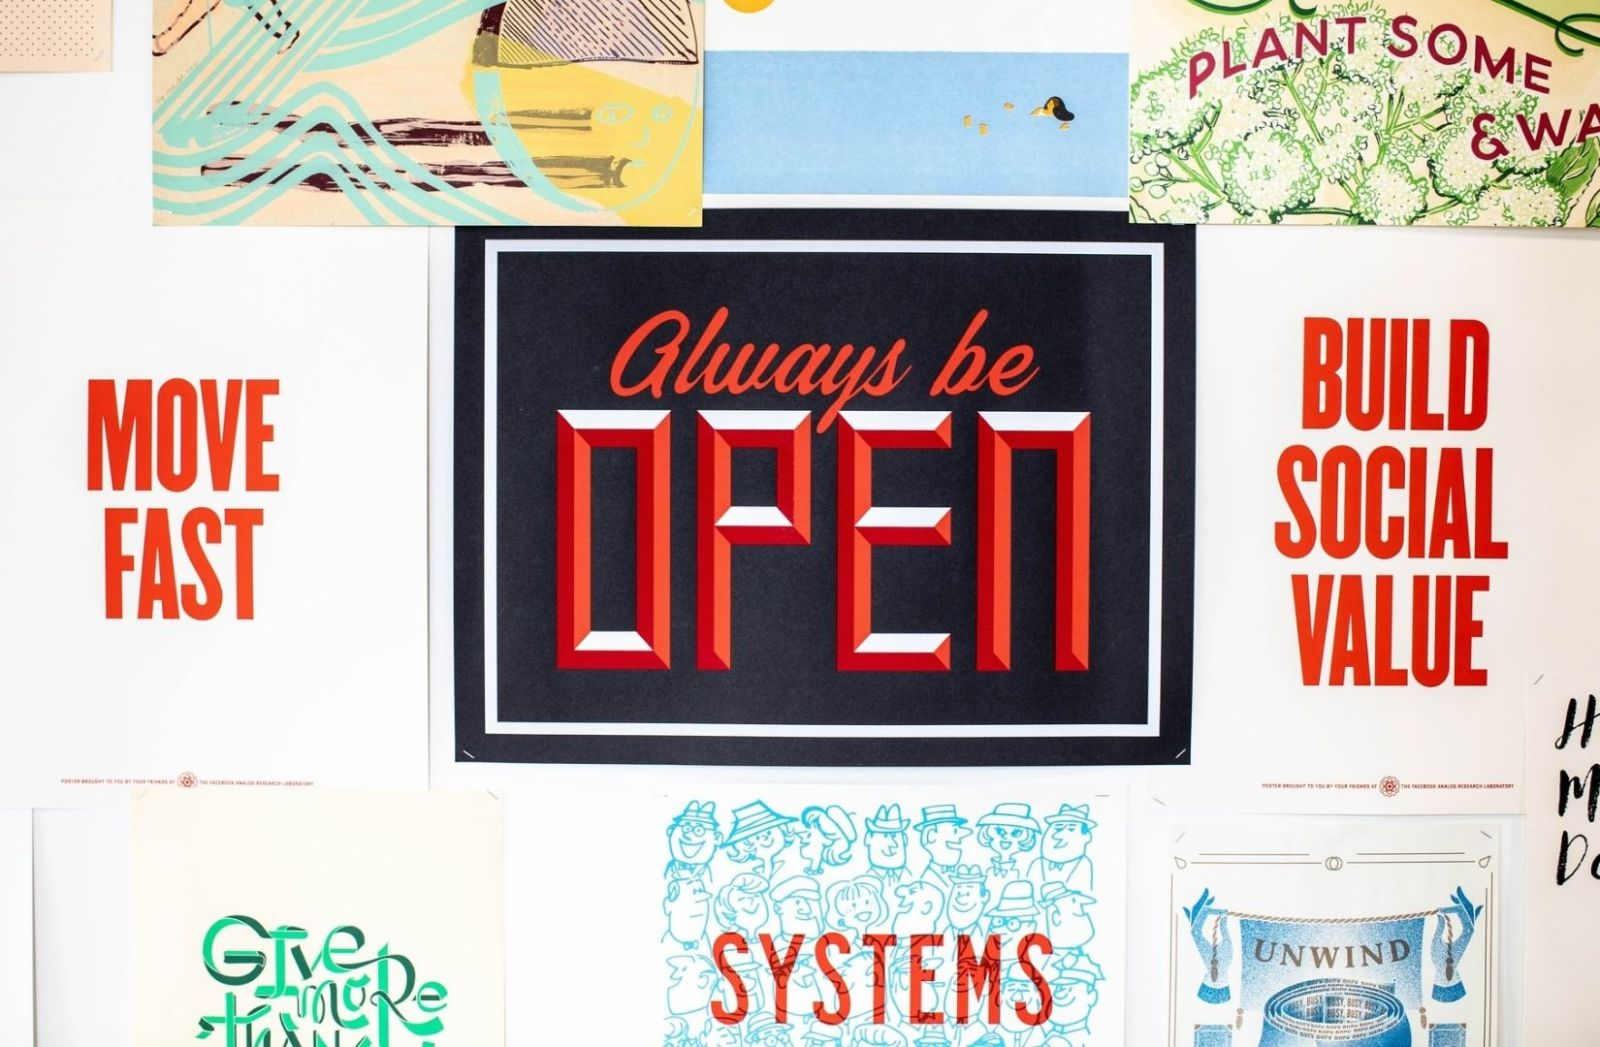 Always be open. (Foto: Charlie Firth, Unsplash.com)